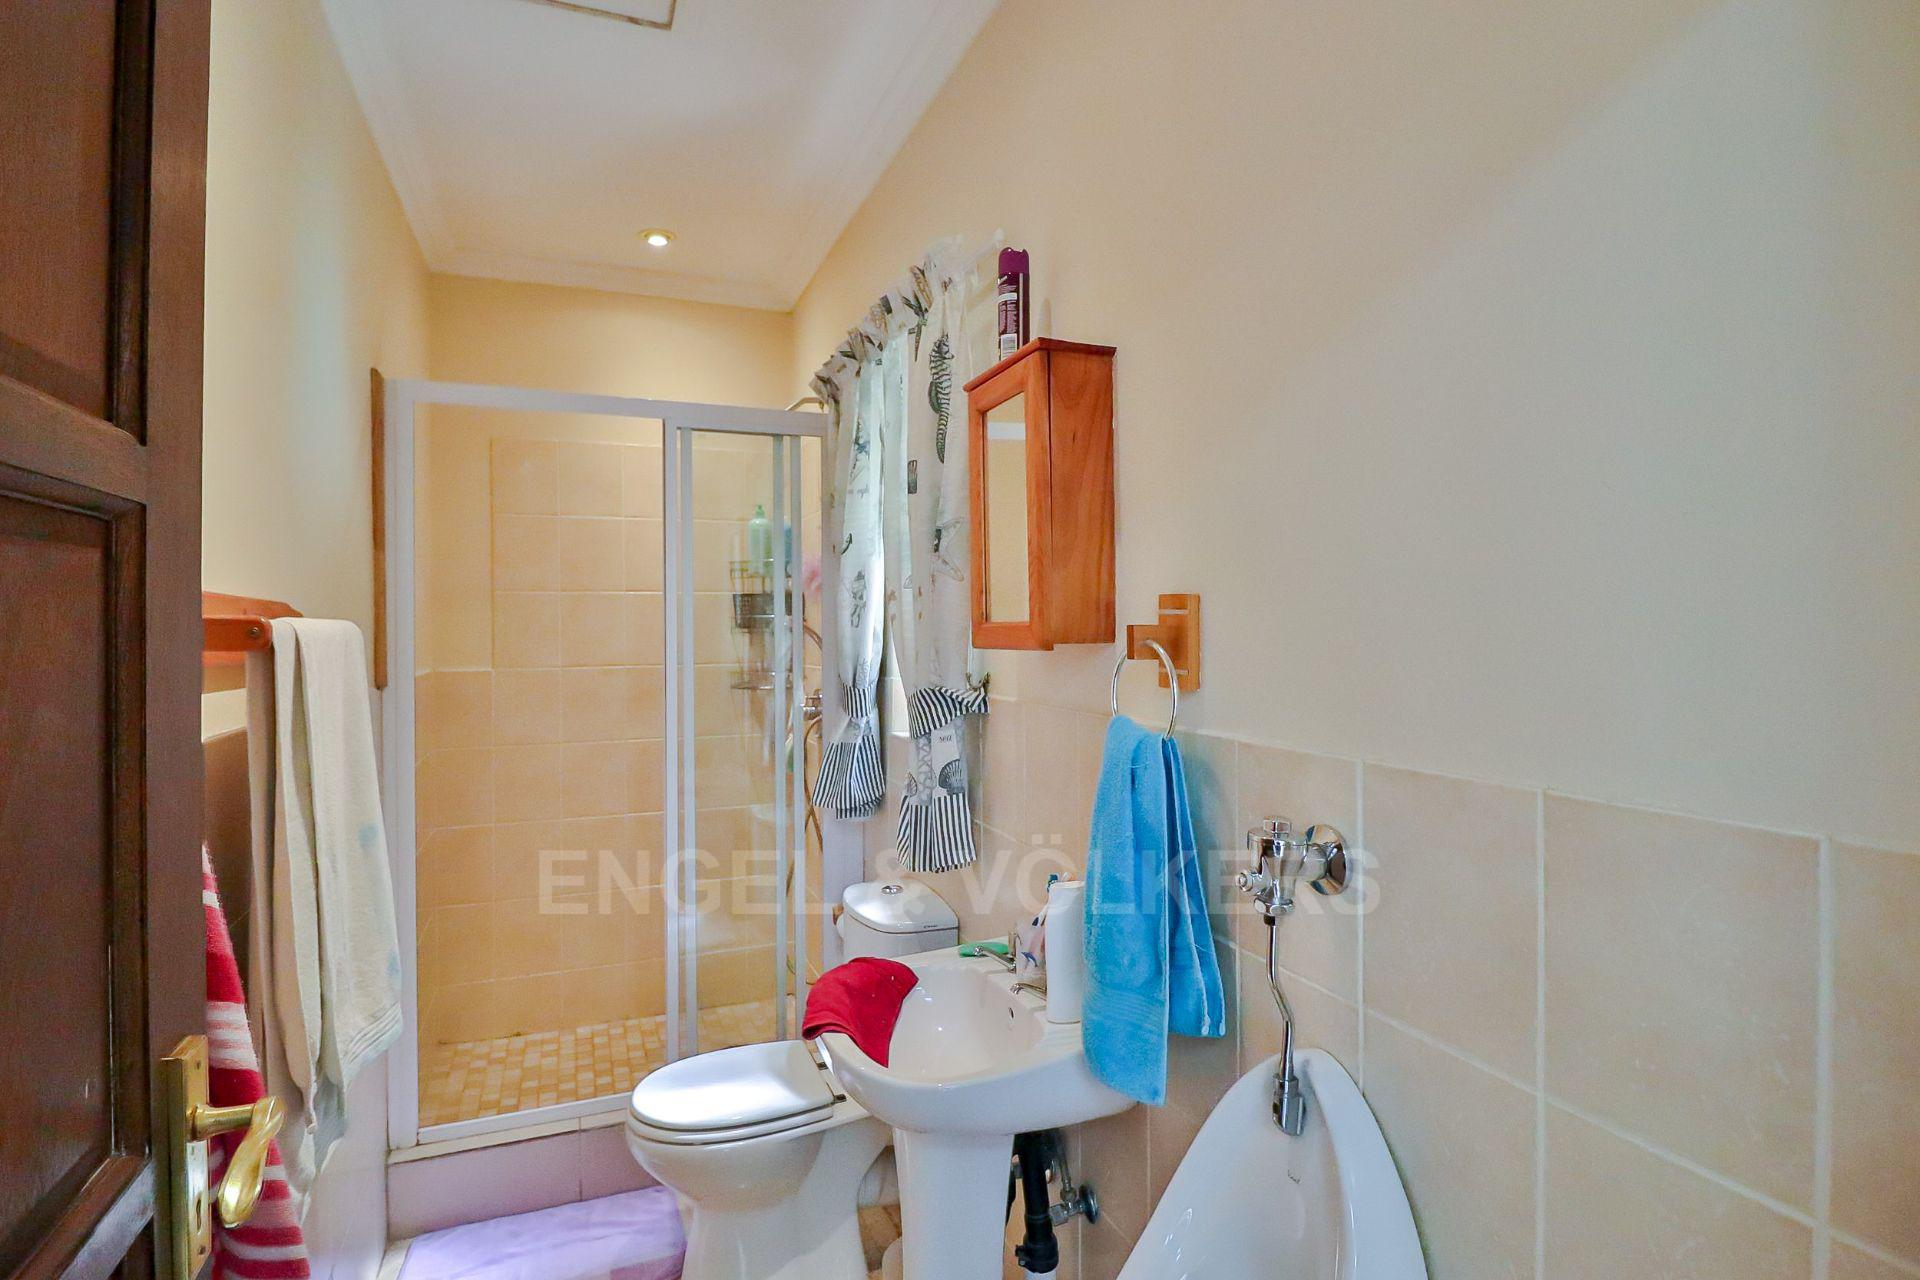 House in Ifafi - Flatlet bathroom